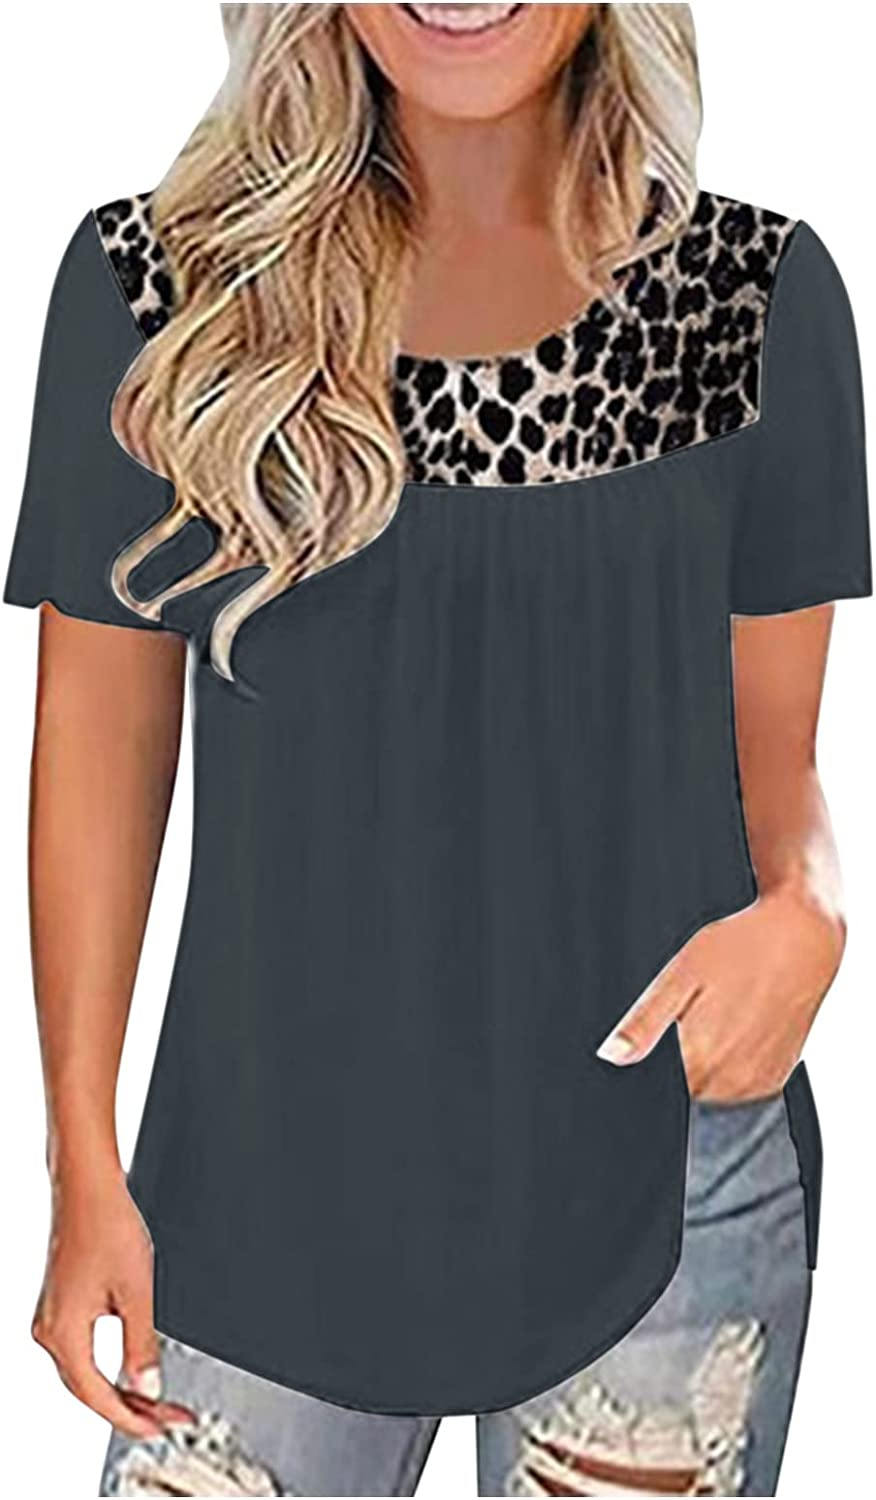 Shirts for Women,Womens Summer Tops and Blouses Lace Crew Neck Tees Short Sleeve Tshirts Dressy Casual Basic Tunic